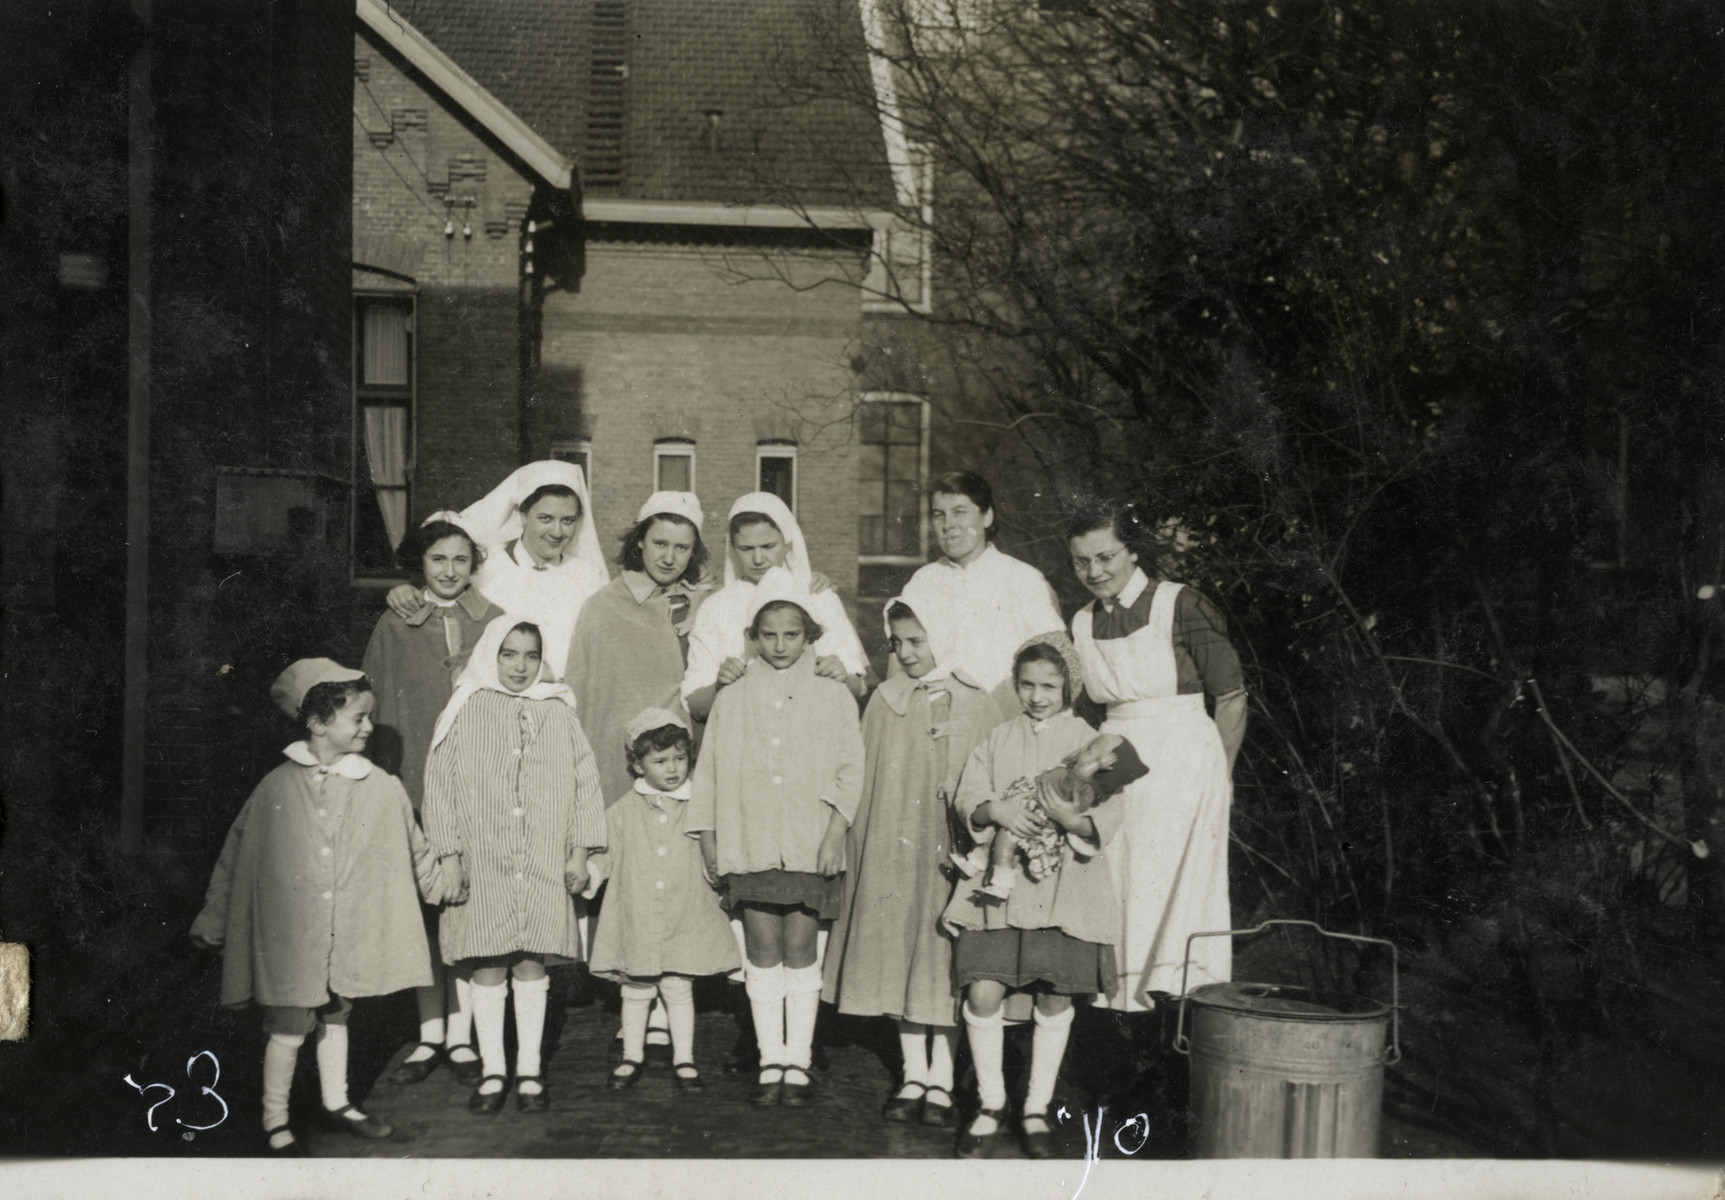 Group portrait of children and nurses in a hospital [probably in Berlin].  Zvi (far left) and Sonni (far right holding a doll) Birnbaum were being treated for diphtheria.